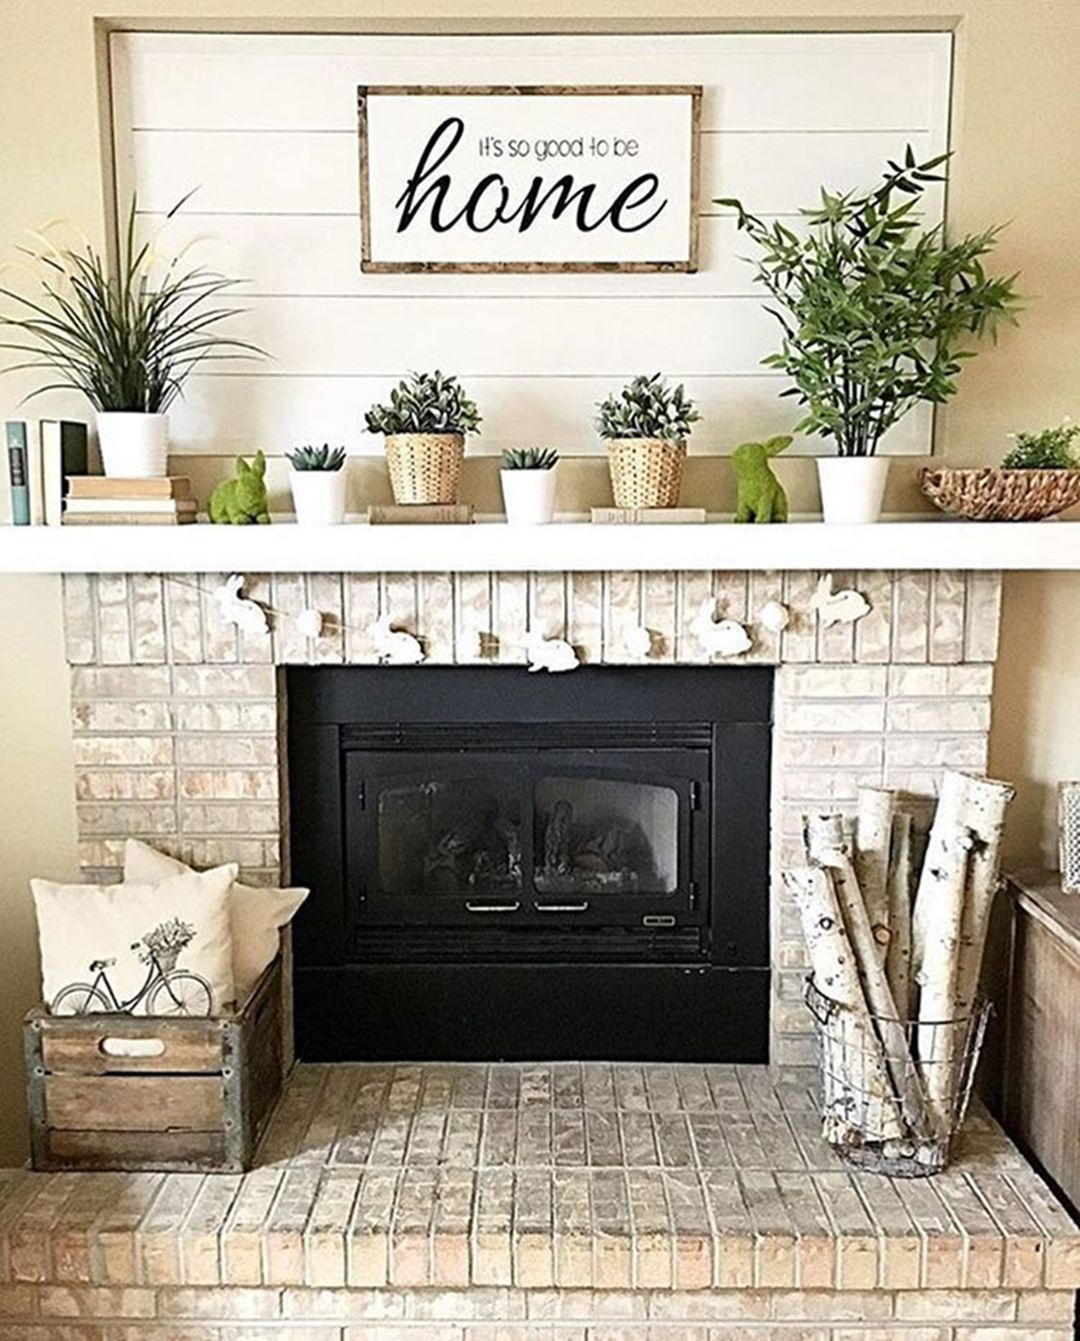 10+ Beautiful Farmhouse Fireplace Mantel Decorations That Will Make You More Comfort images